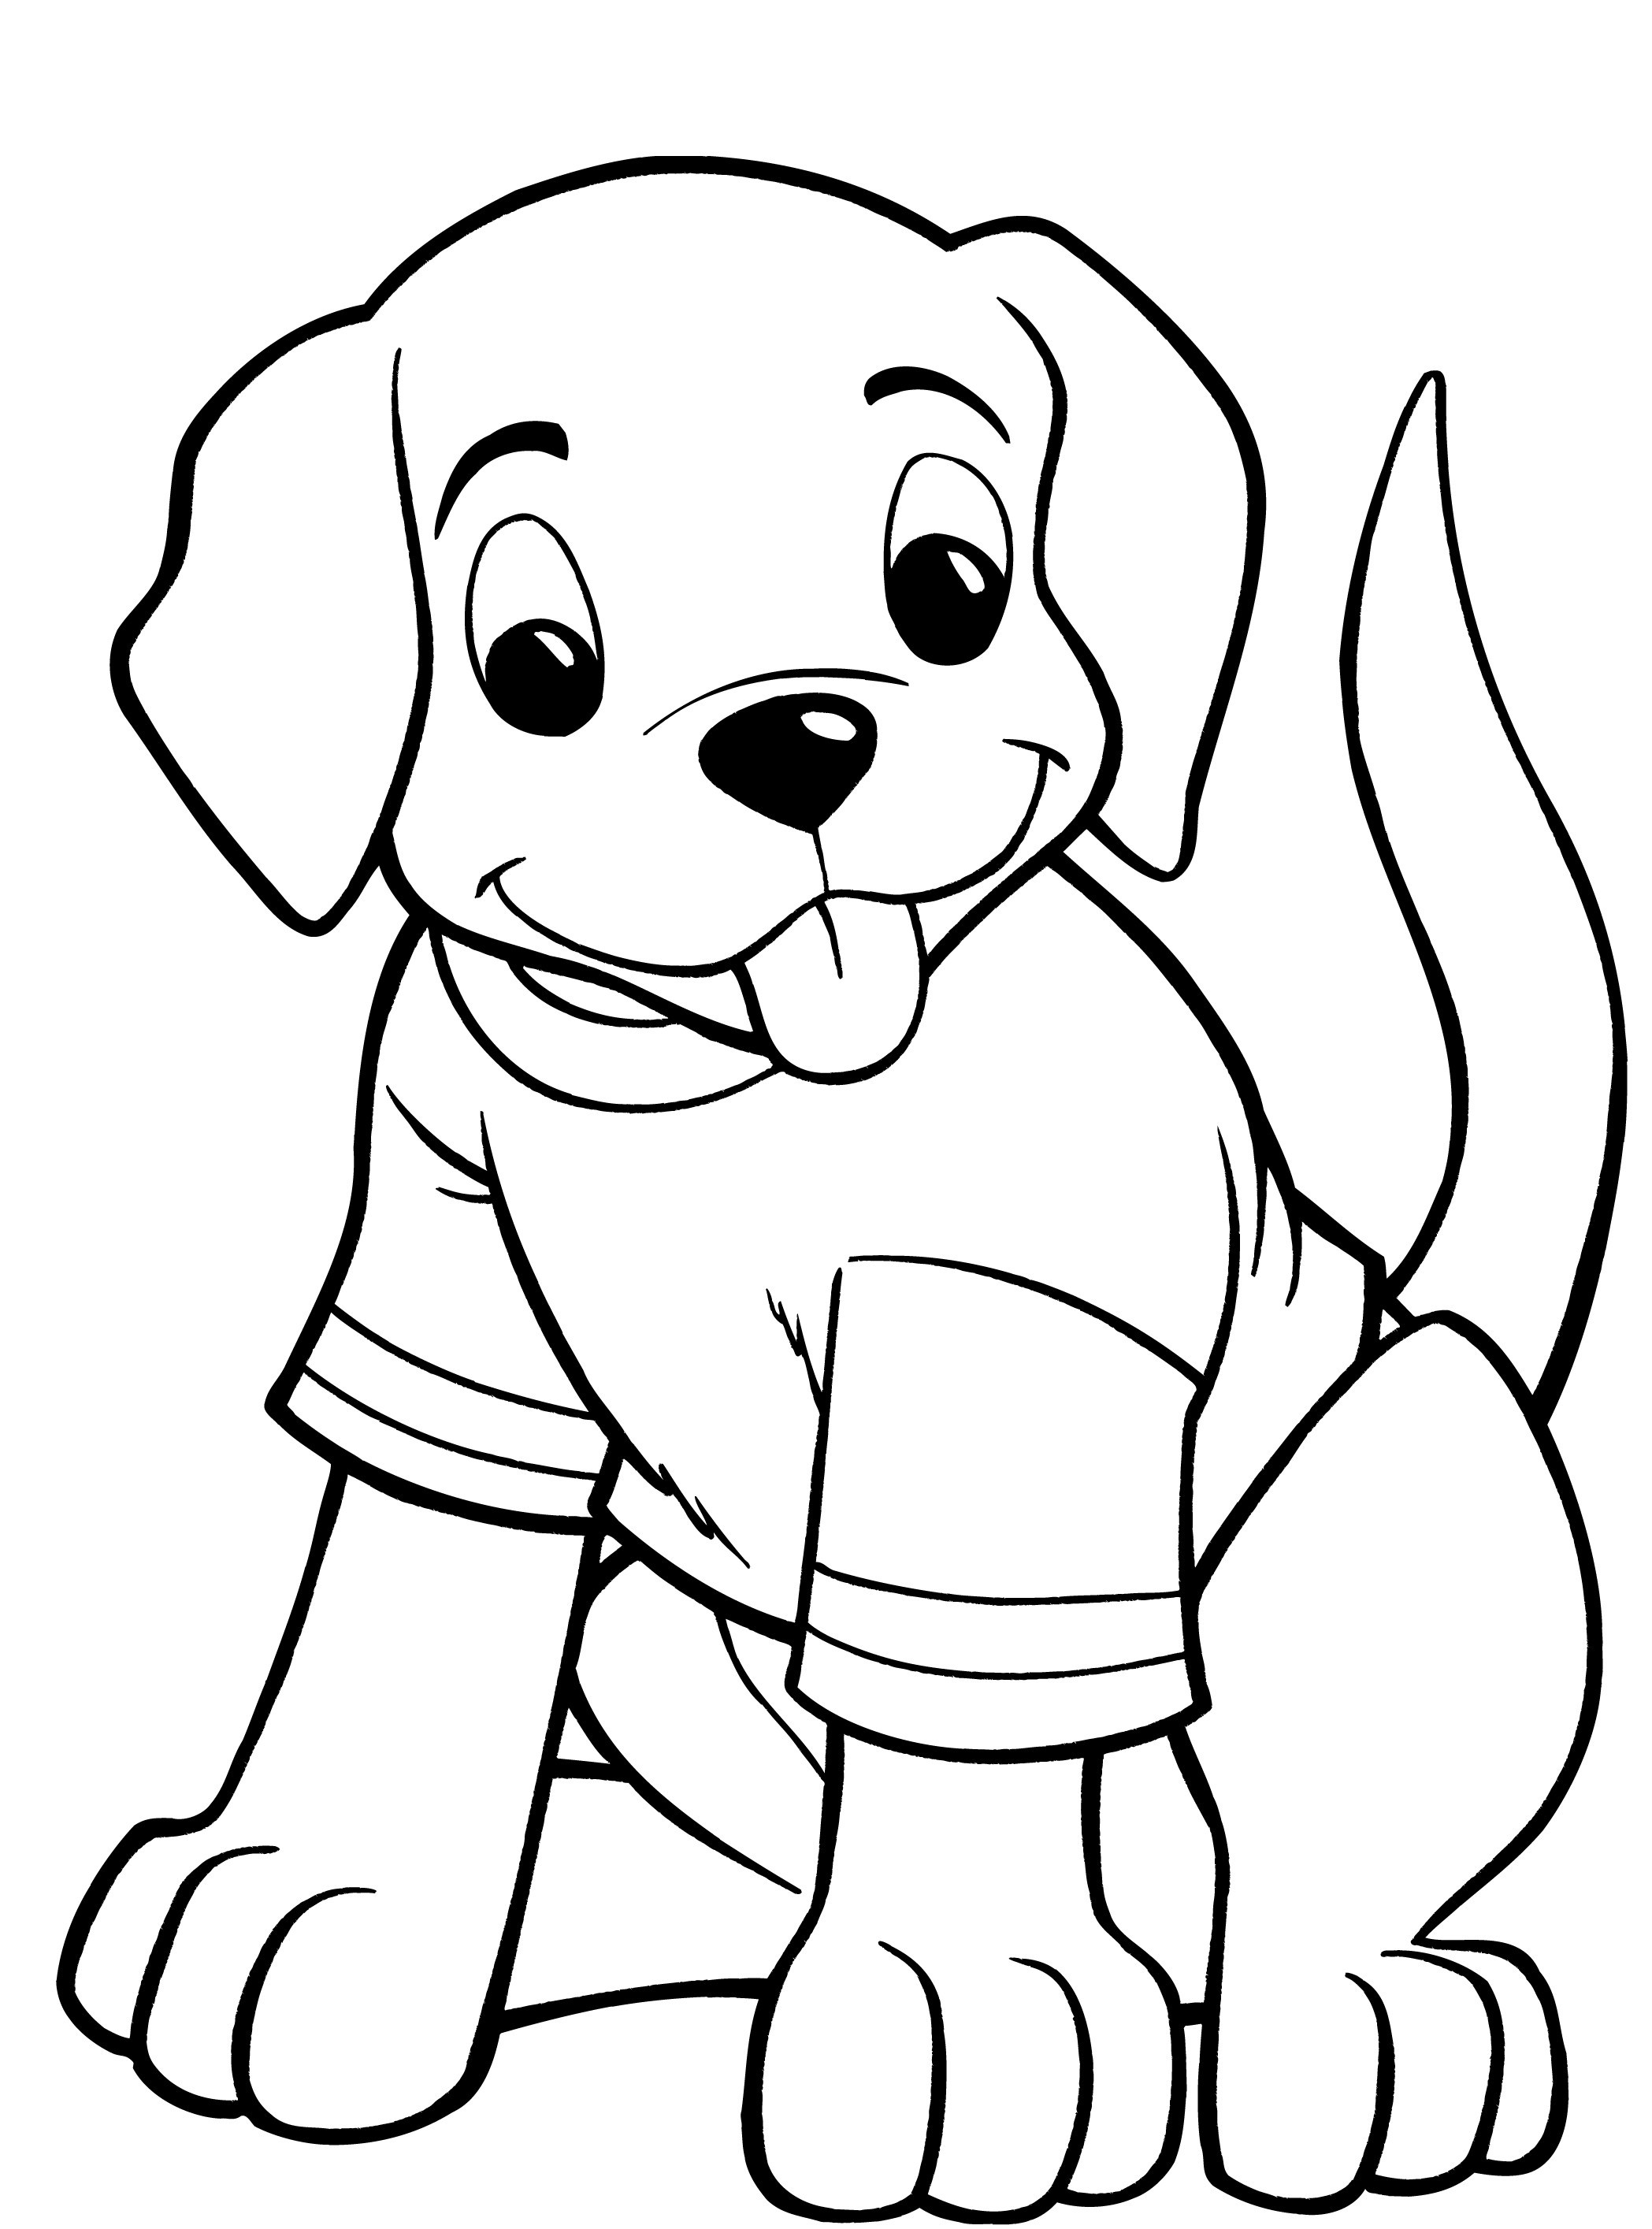 coloring pages of puppies print download draw your own puppy coloring pages of puppies pages coloring